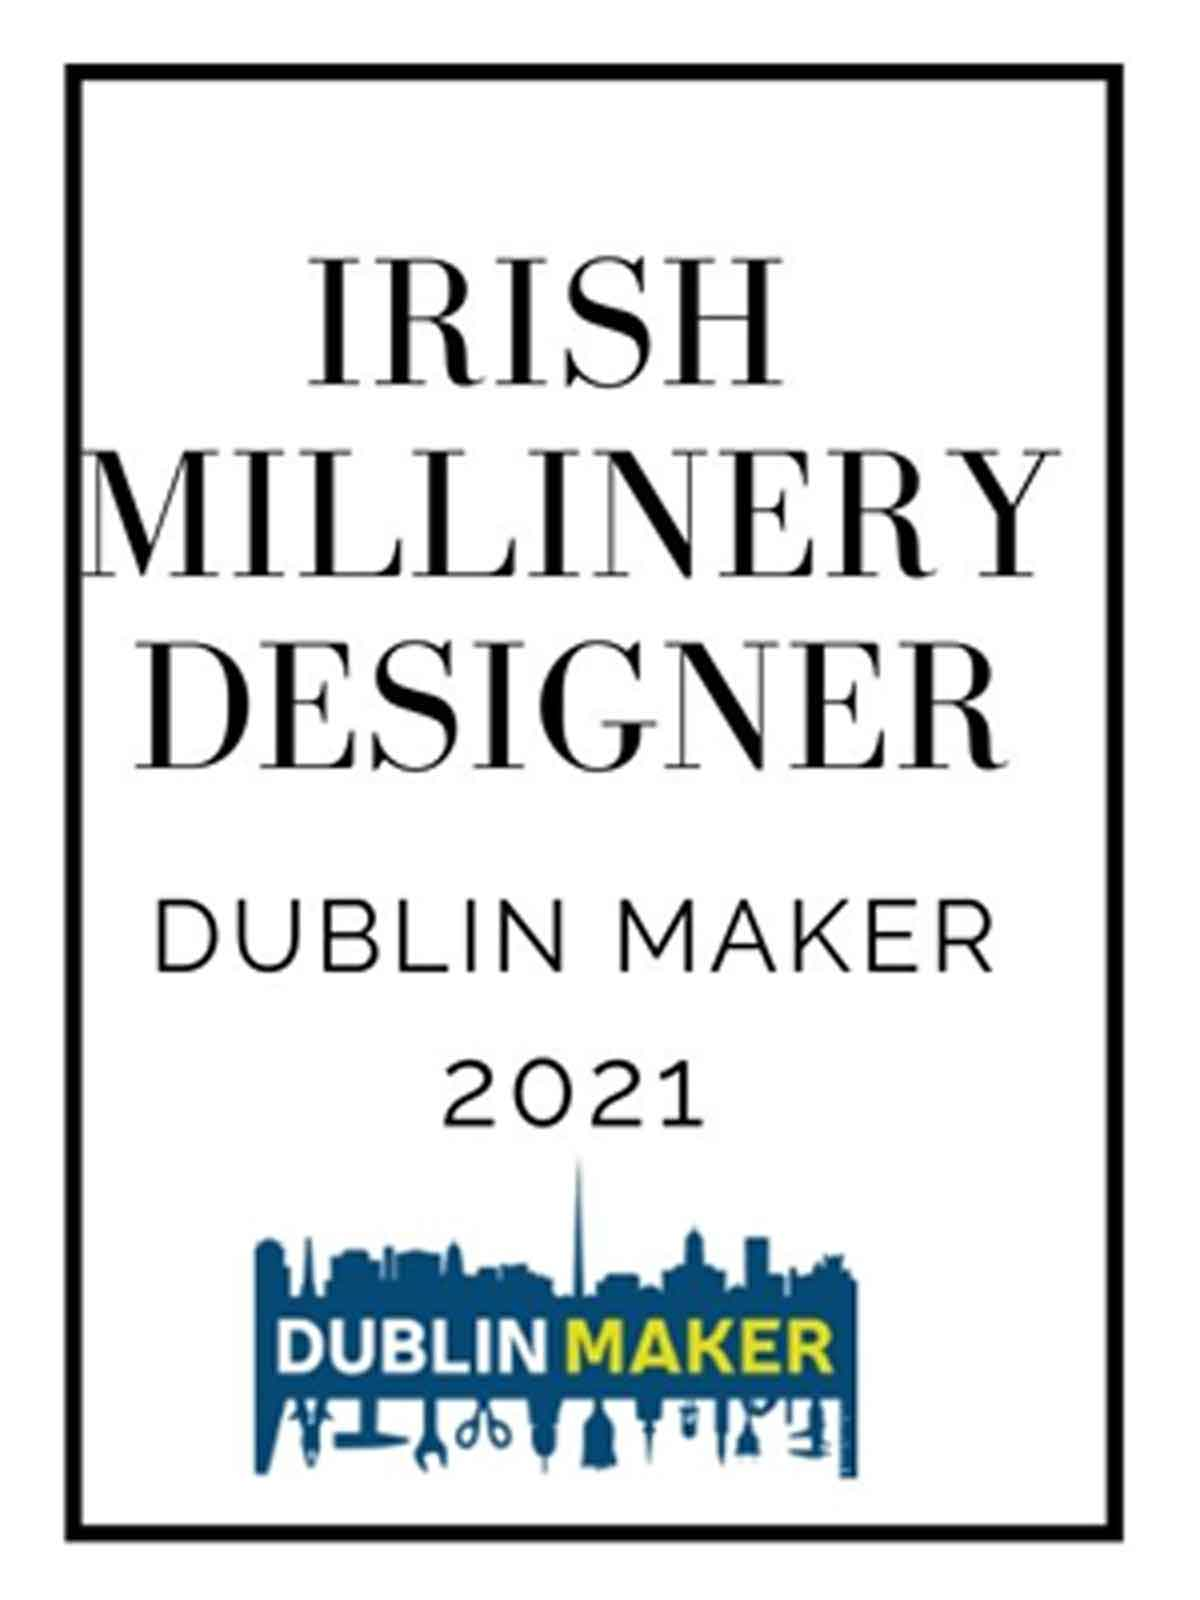 The Dublin Maker 2021 with Saraden Designs Millinery Atelier owner Sarah ' Rourke